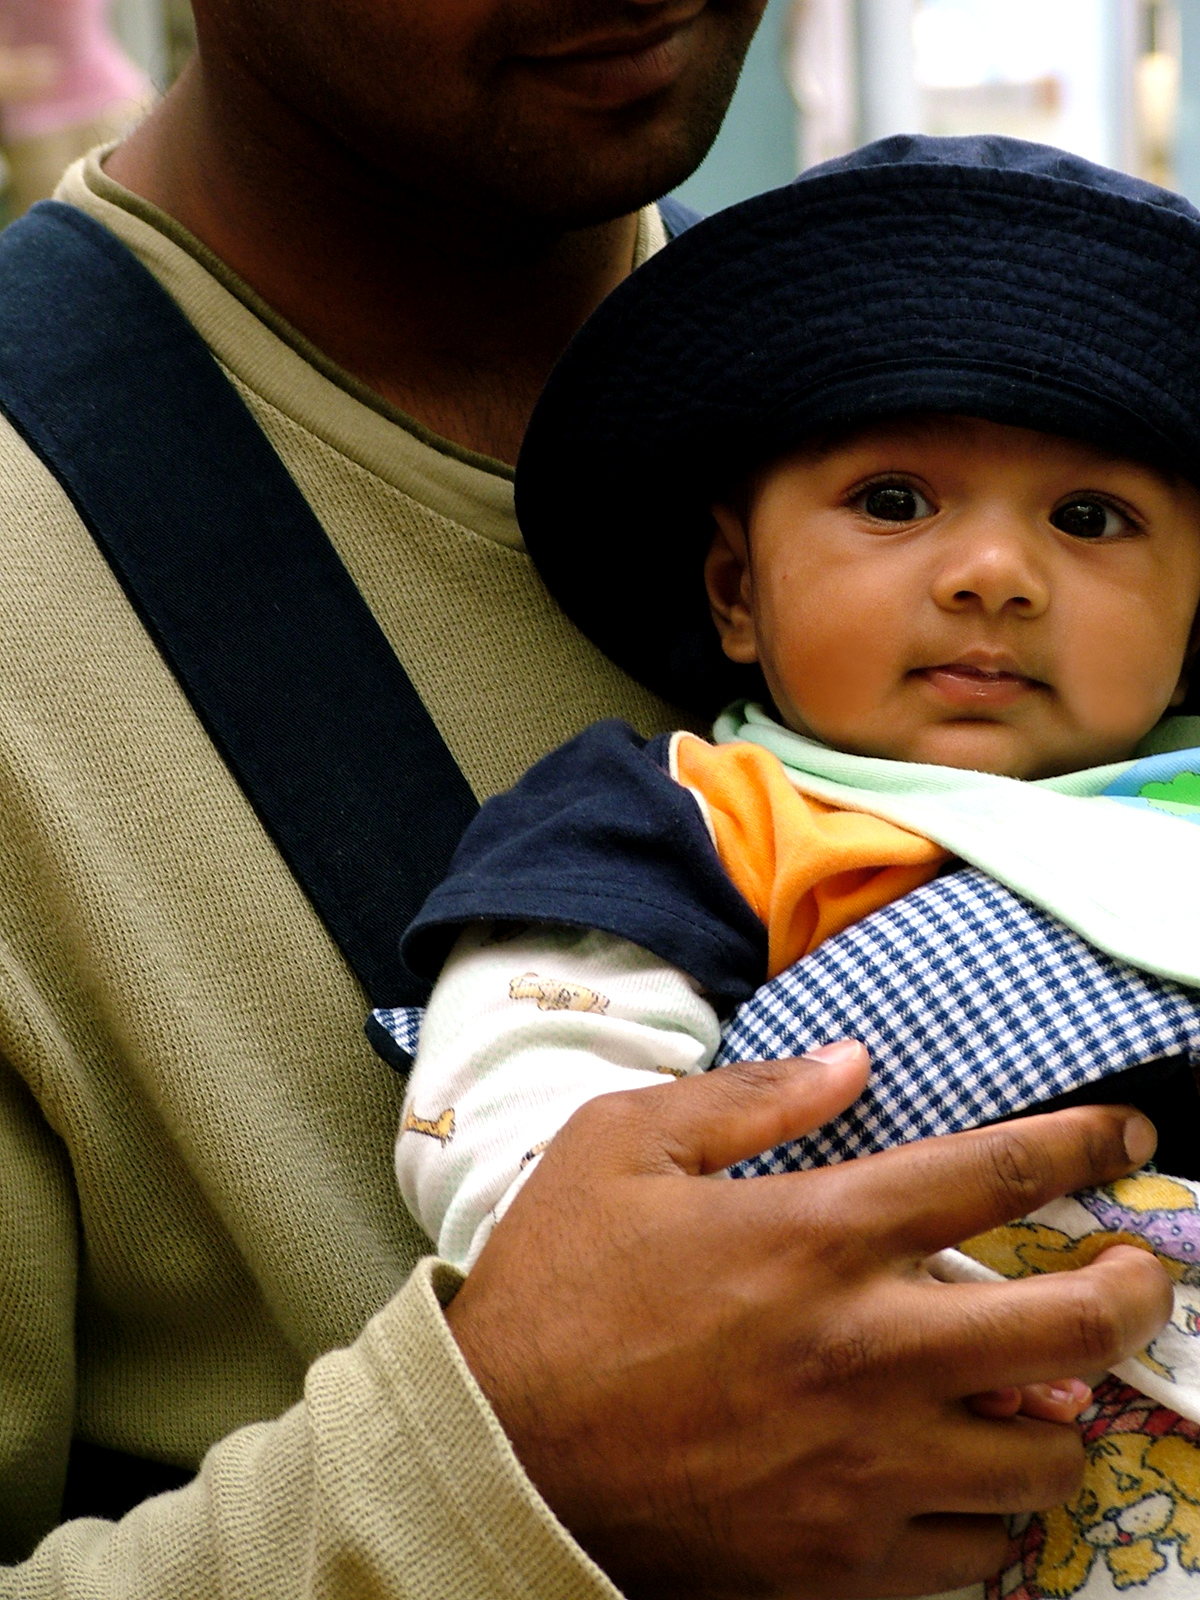 Paternity leave changes the facts